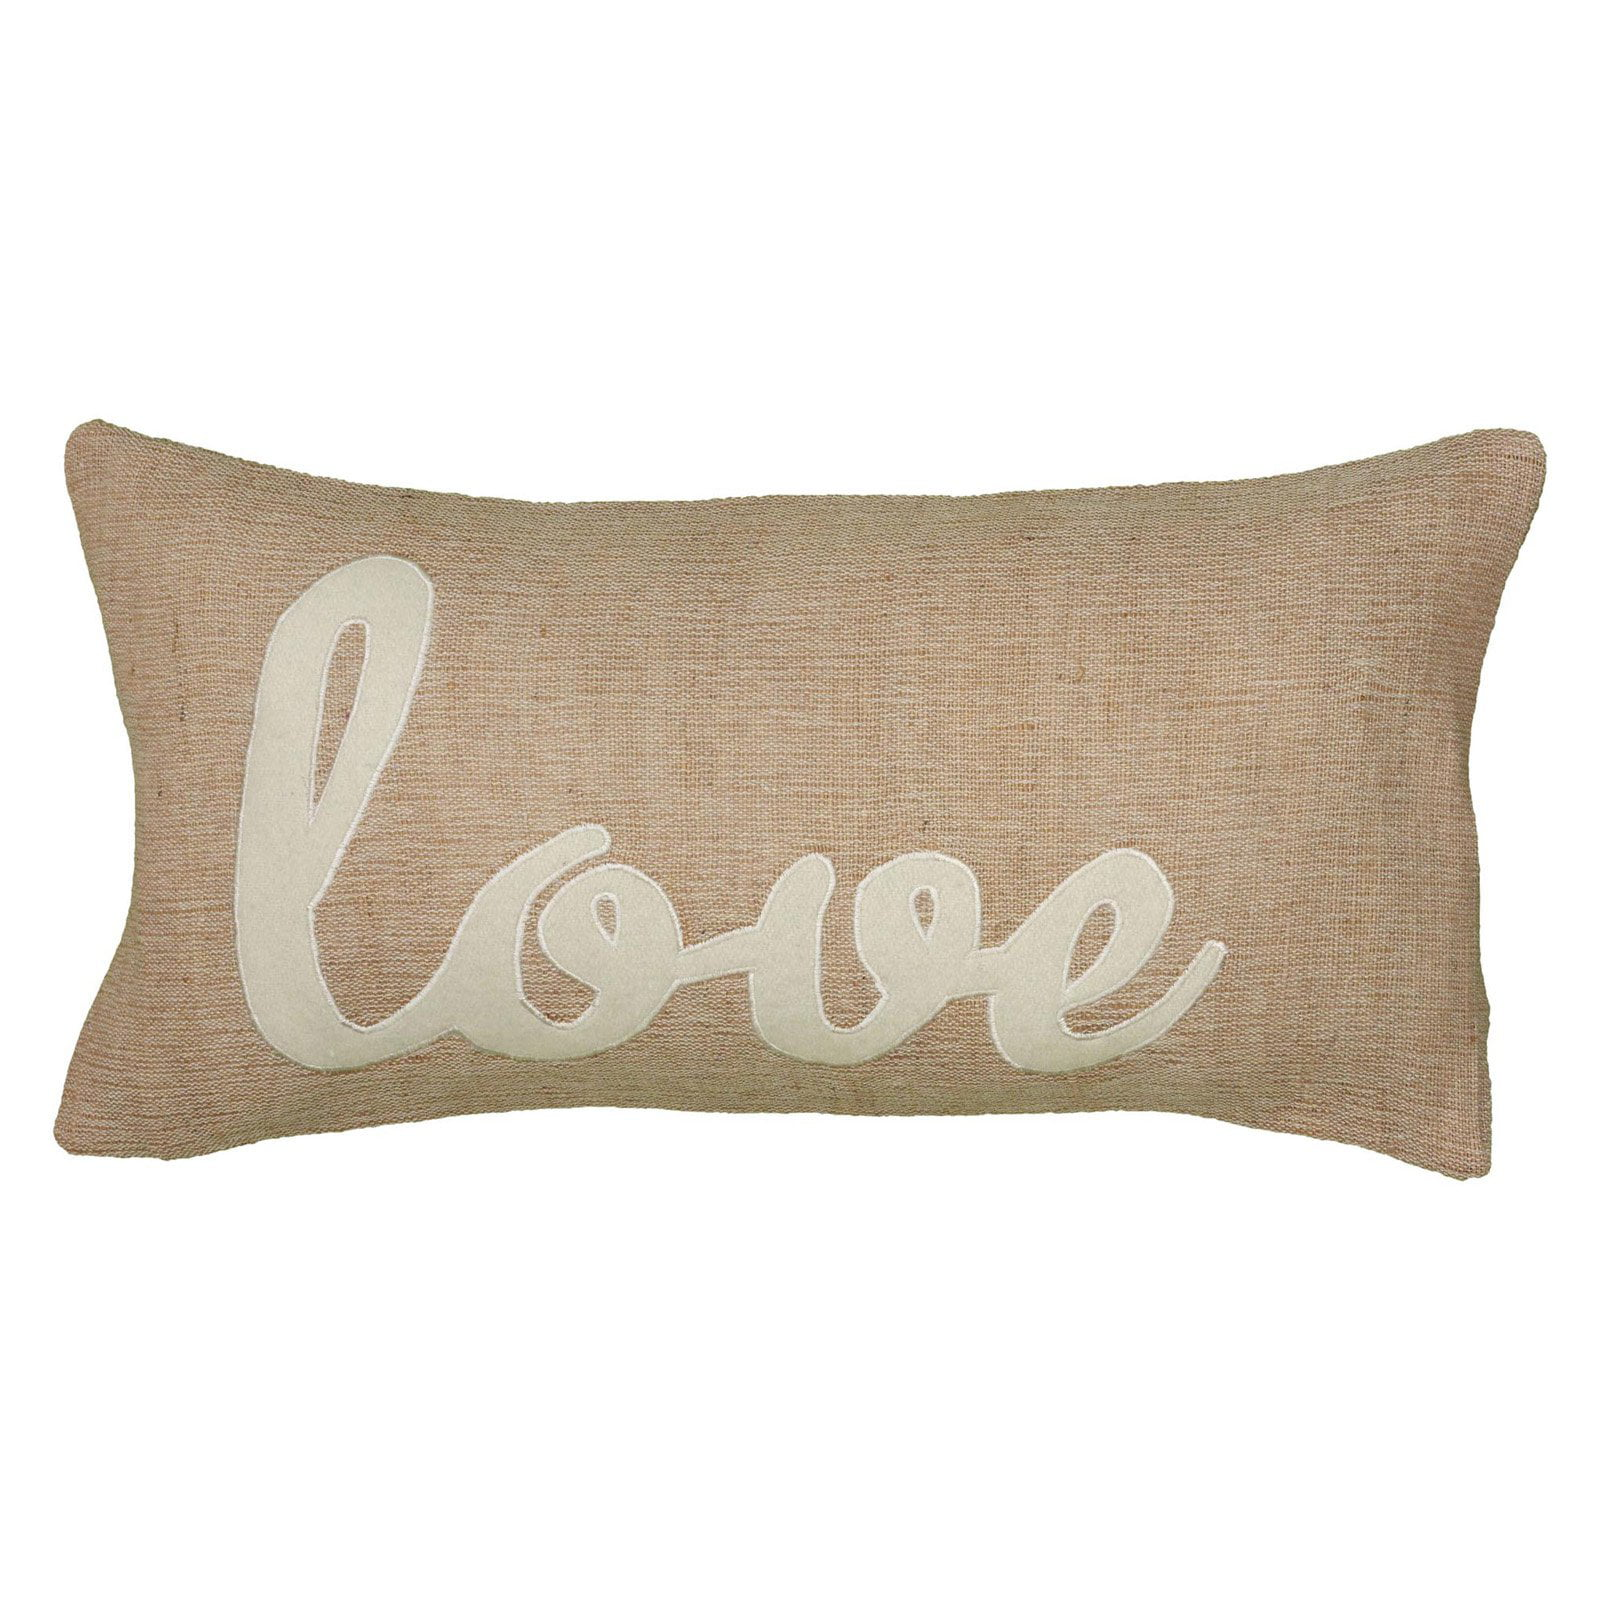 """Wildon Home """"Love"""" Decorative Throw Pillow Cover, 12"""" x 18"""" by Supplier Generic"""